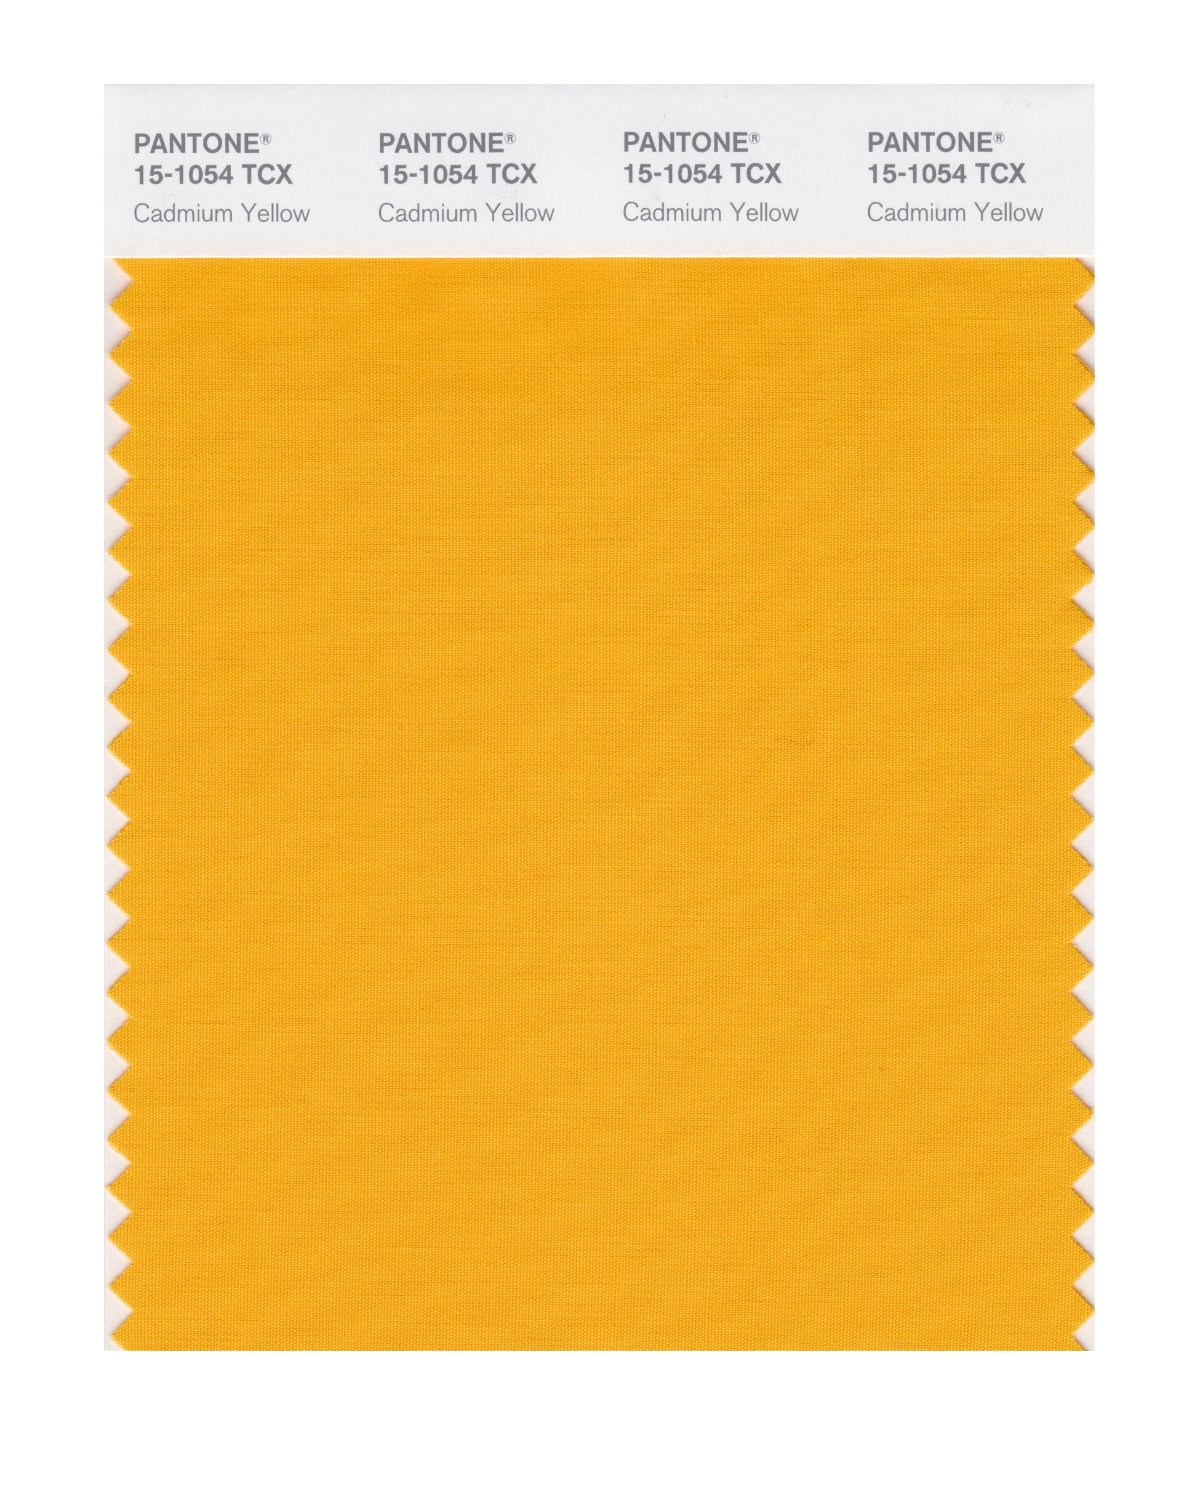 Pantone Smart Swatch 15-1054 Cadmium Yellow